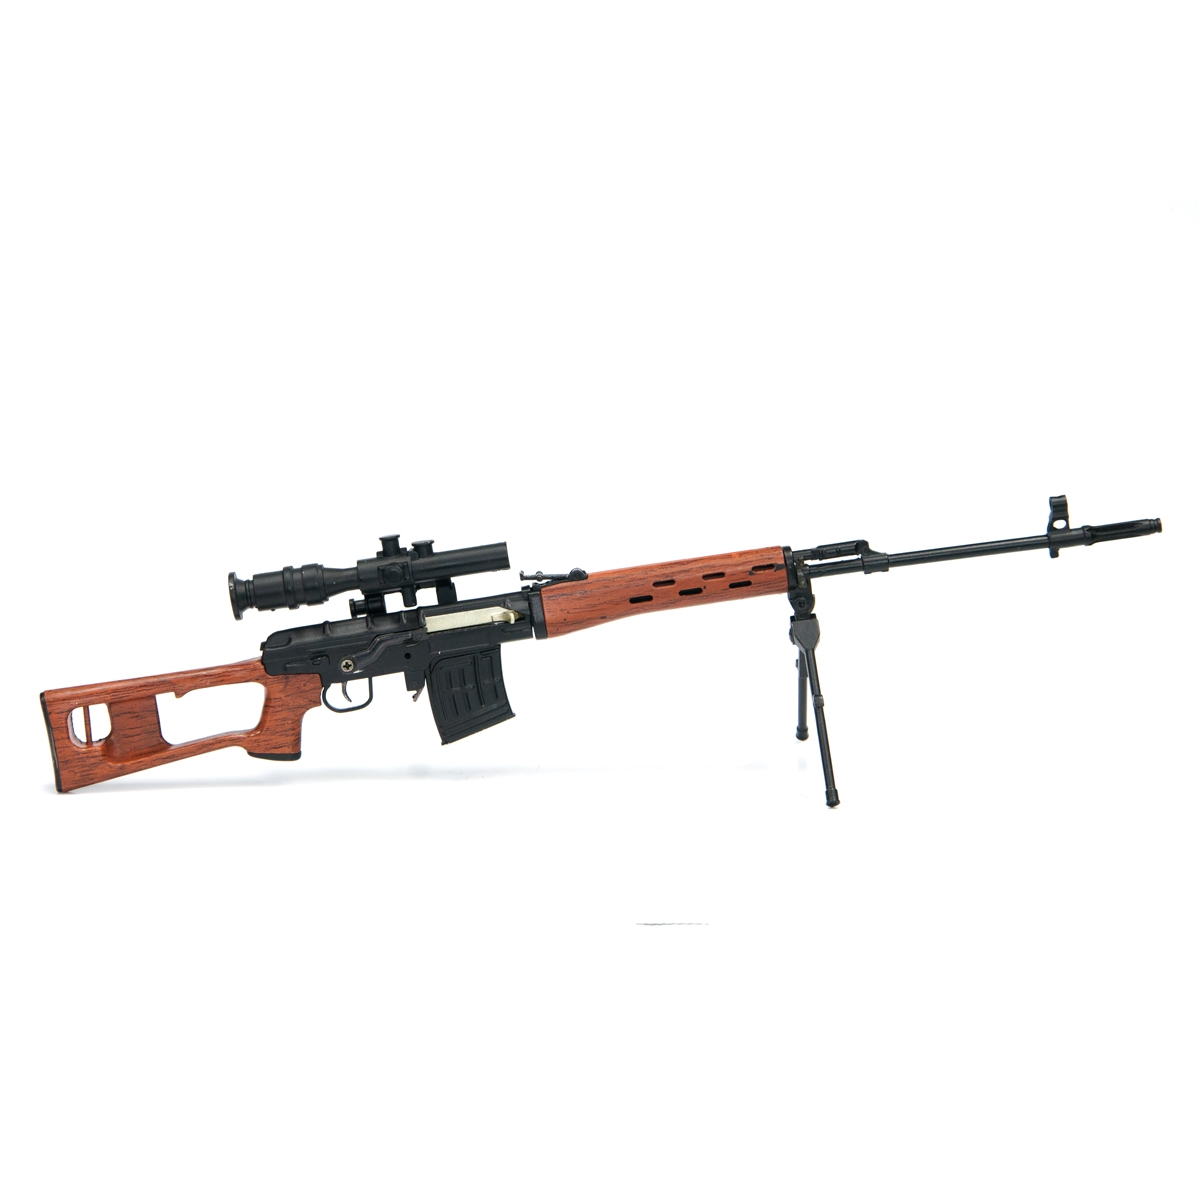 Miniatura de Arma Rifle SVD Dragunov Arsenal Guns